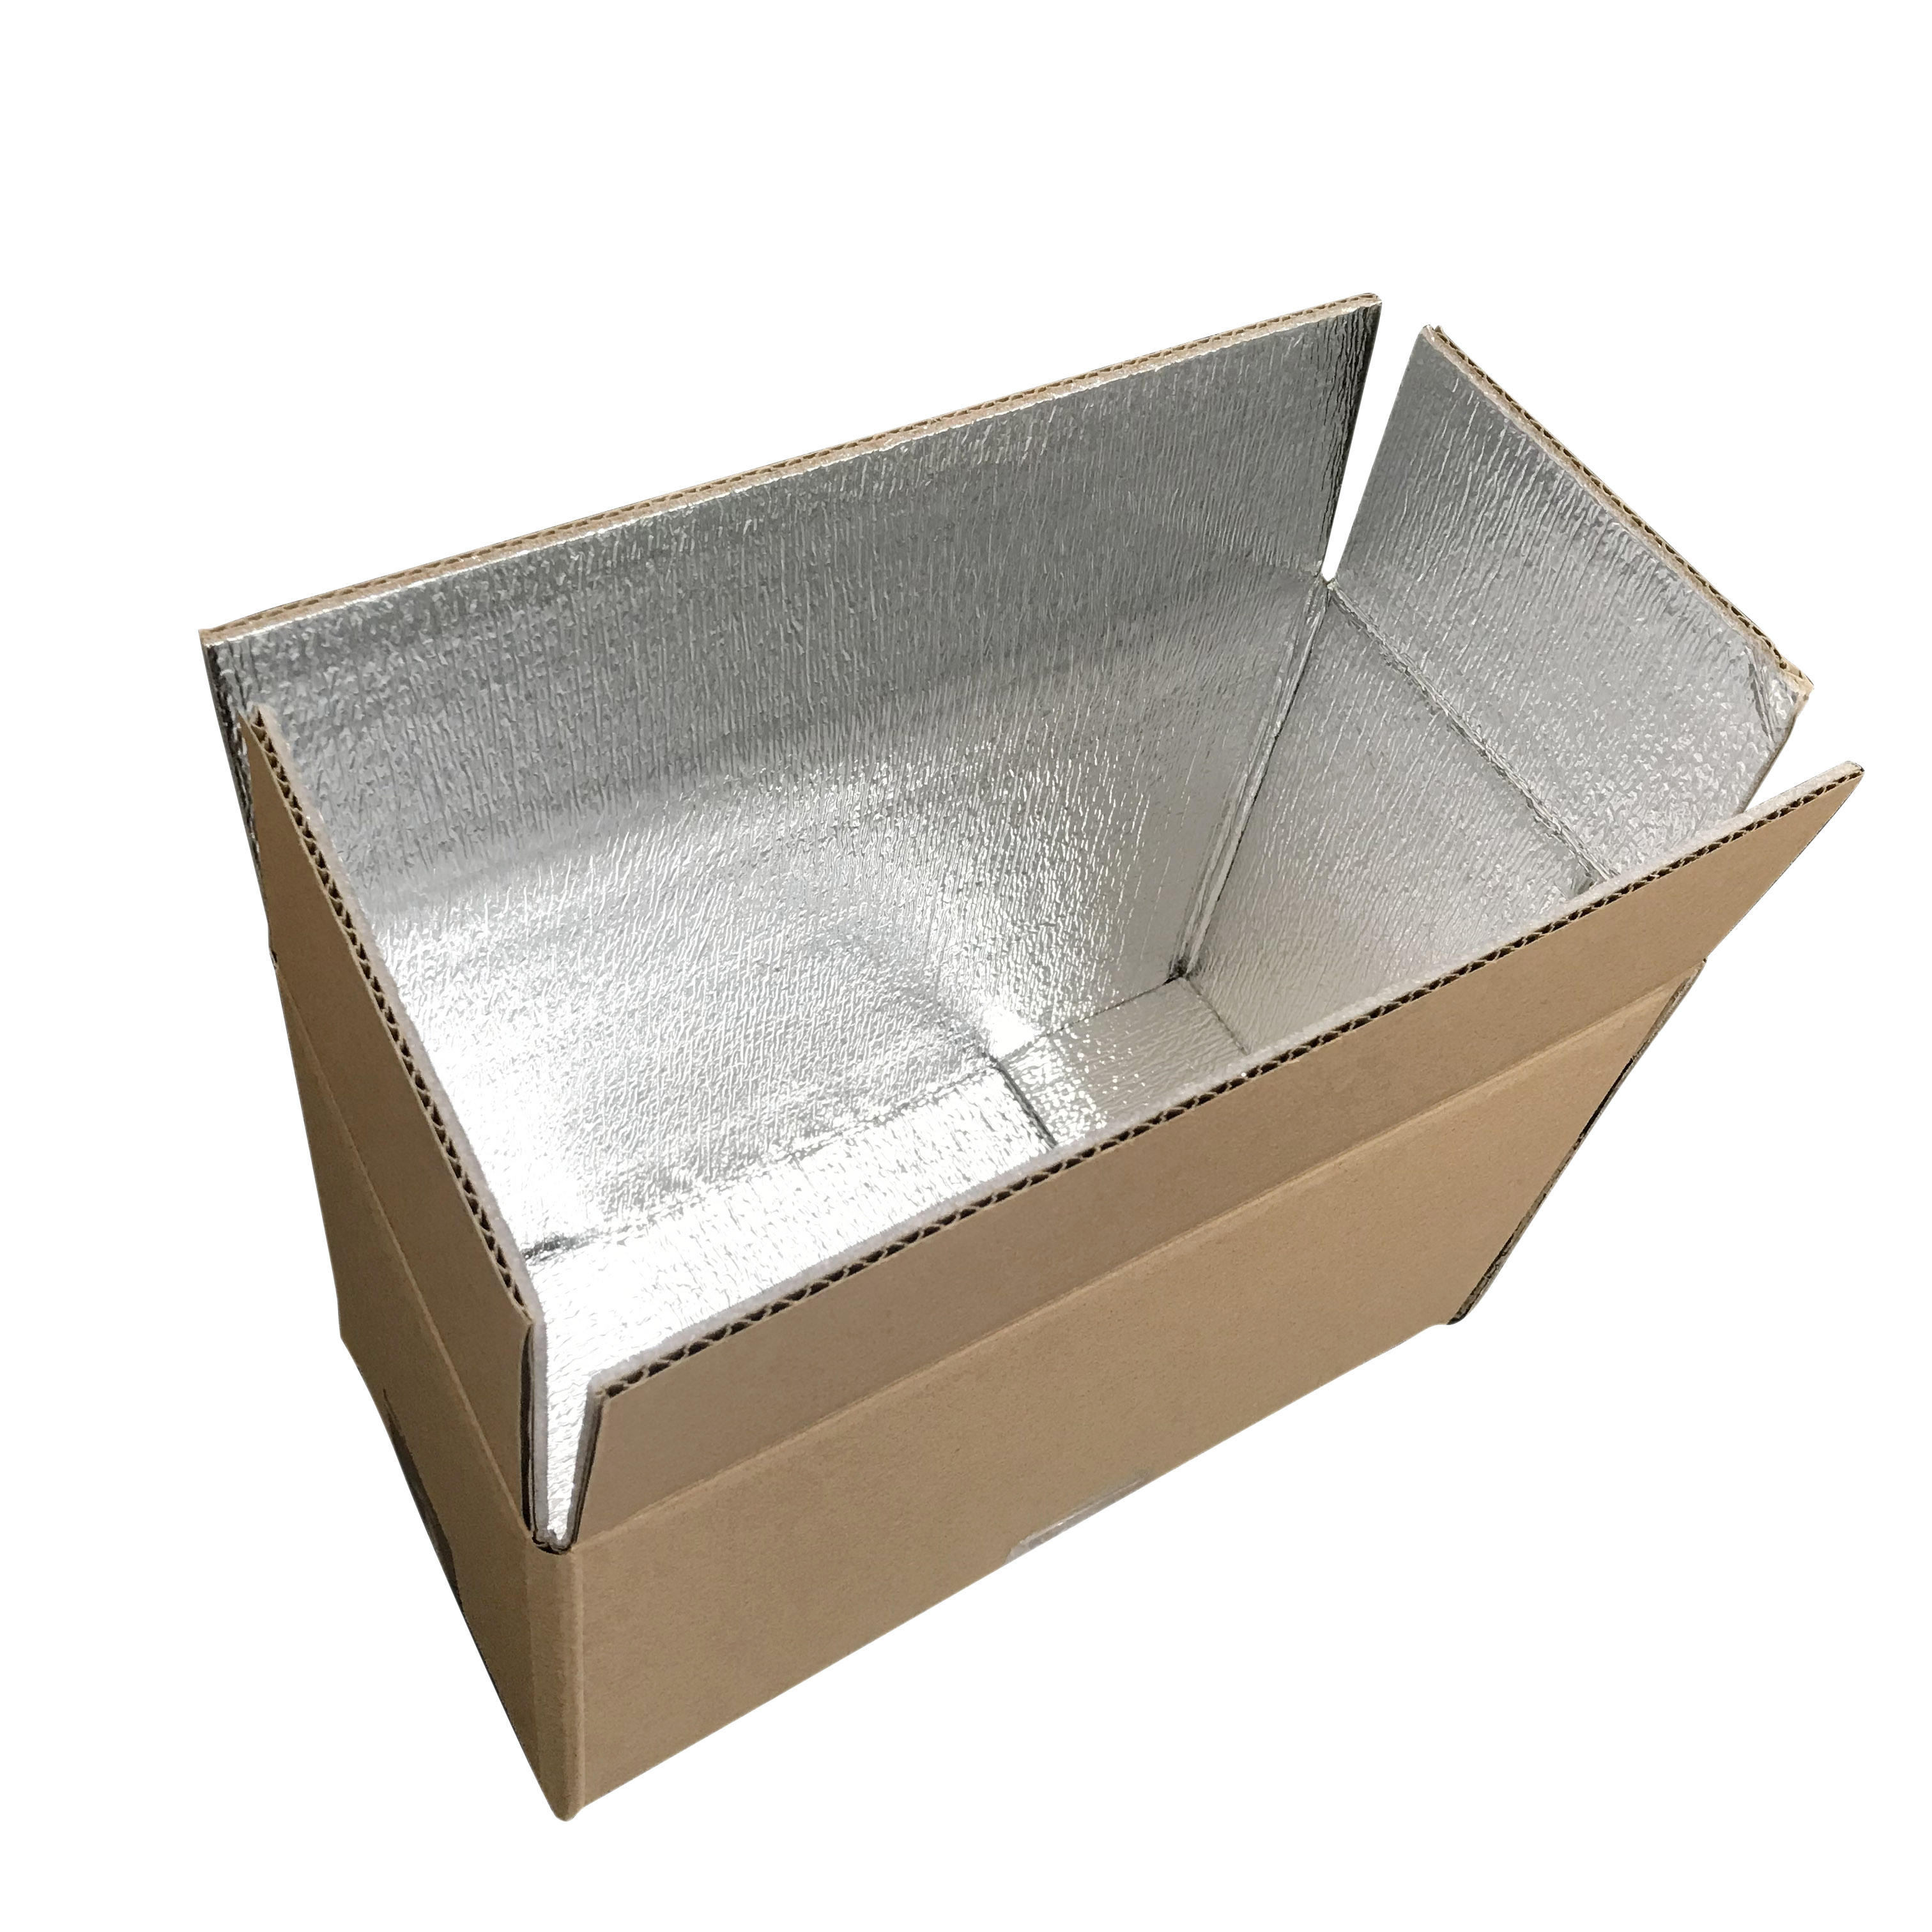 Thermal Packaging Insulating Shipping Box for Seafood Beef Meat Fruit Cold Packaging